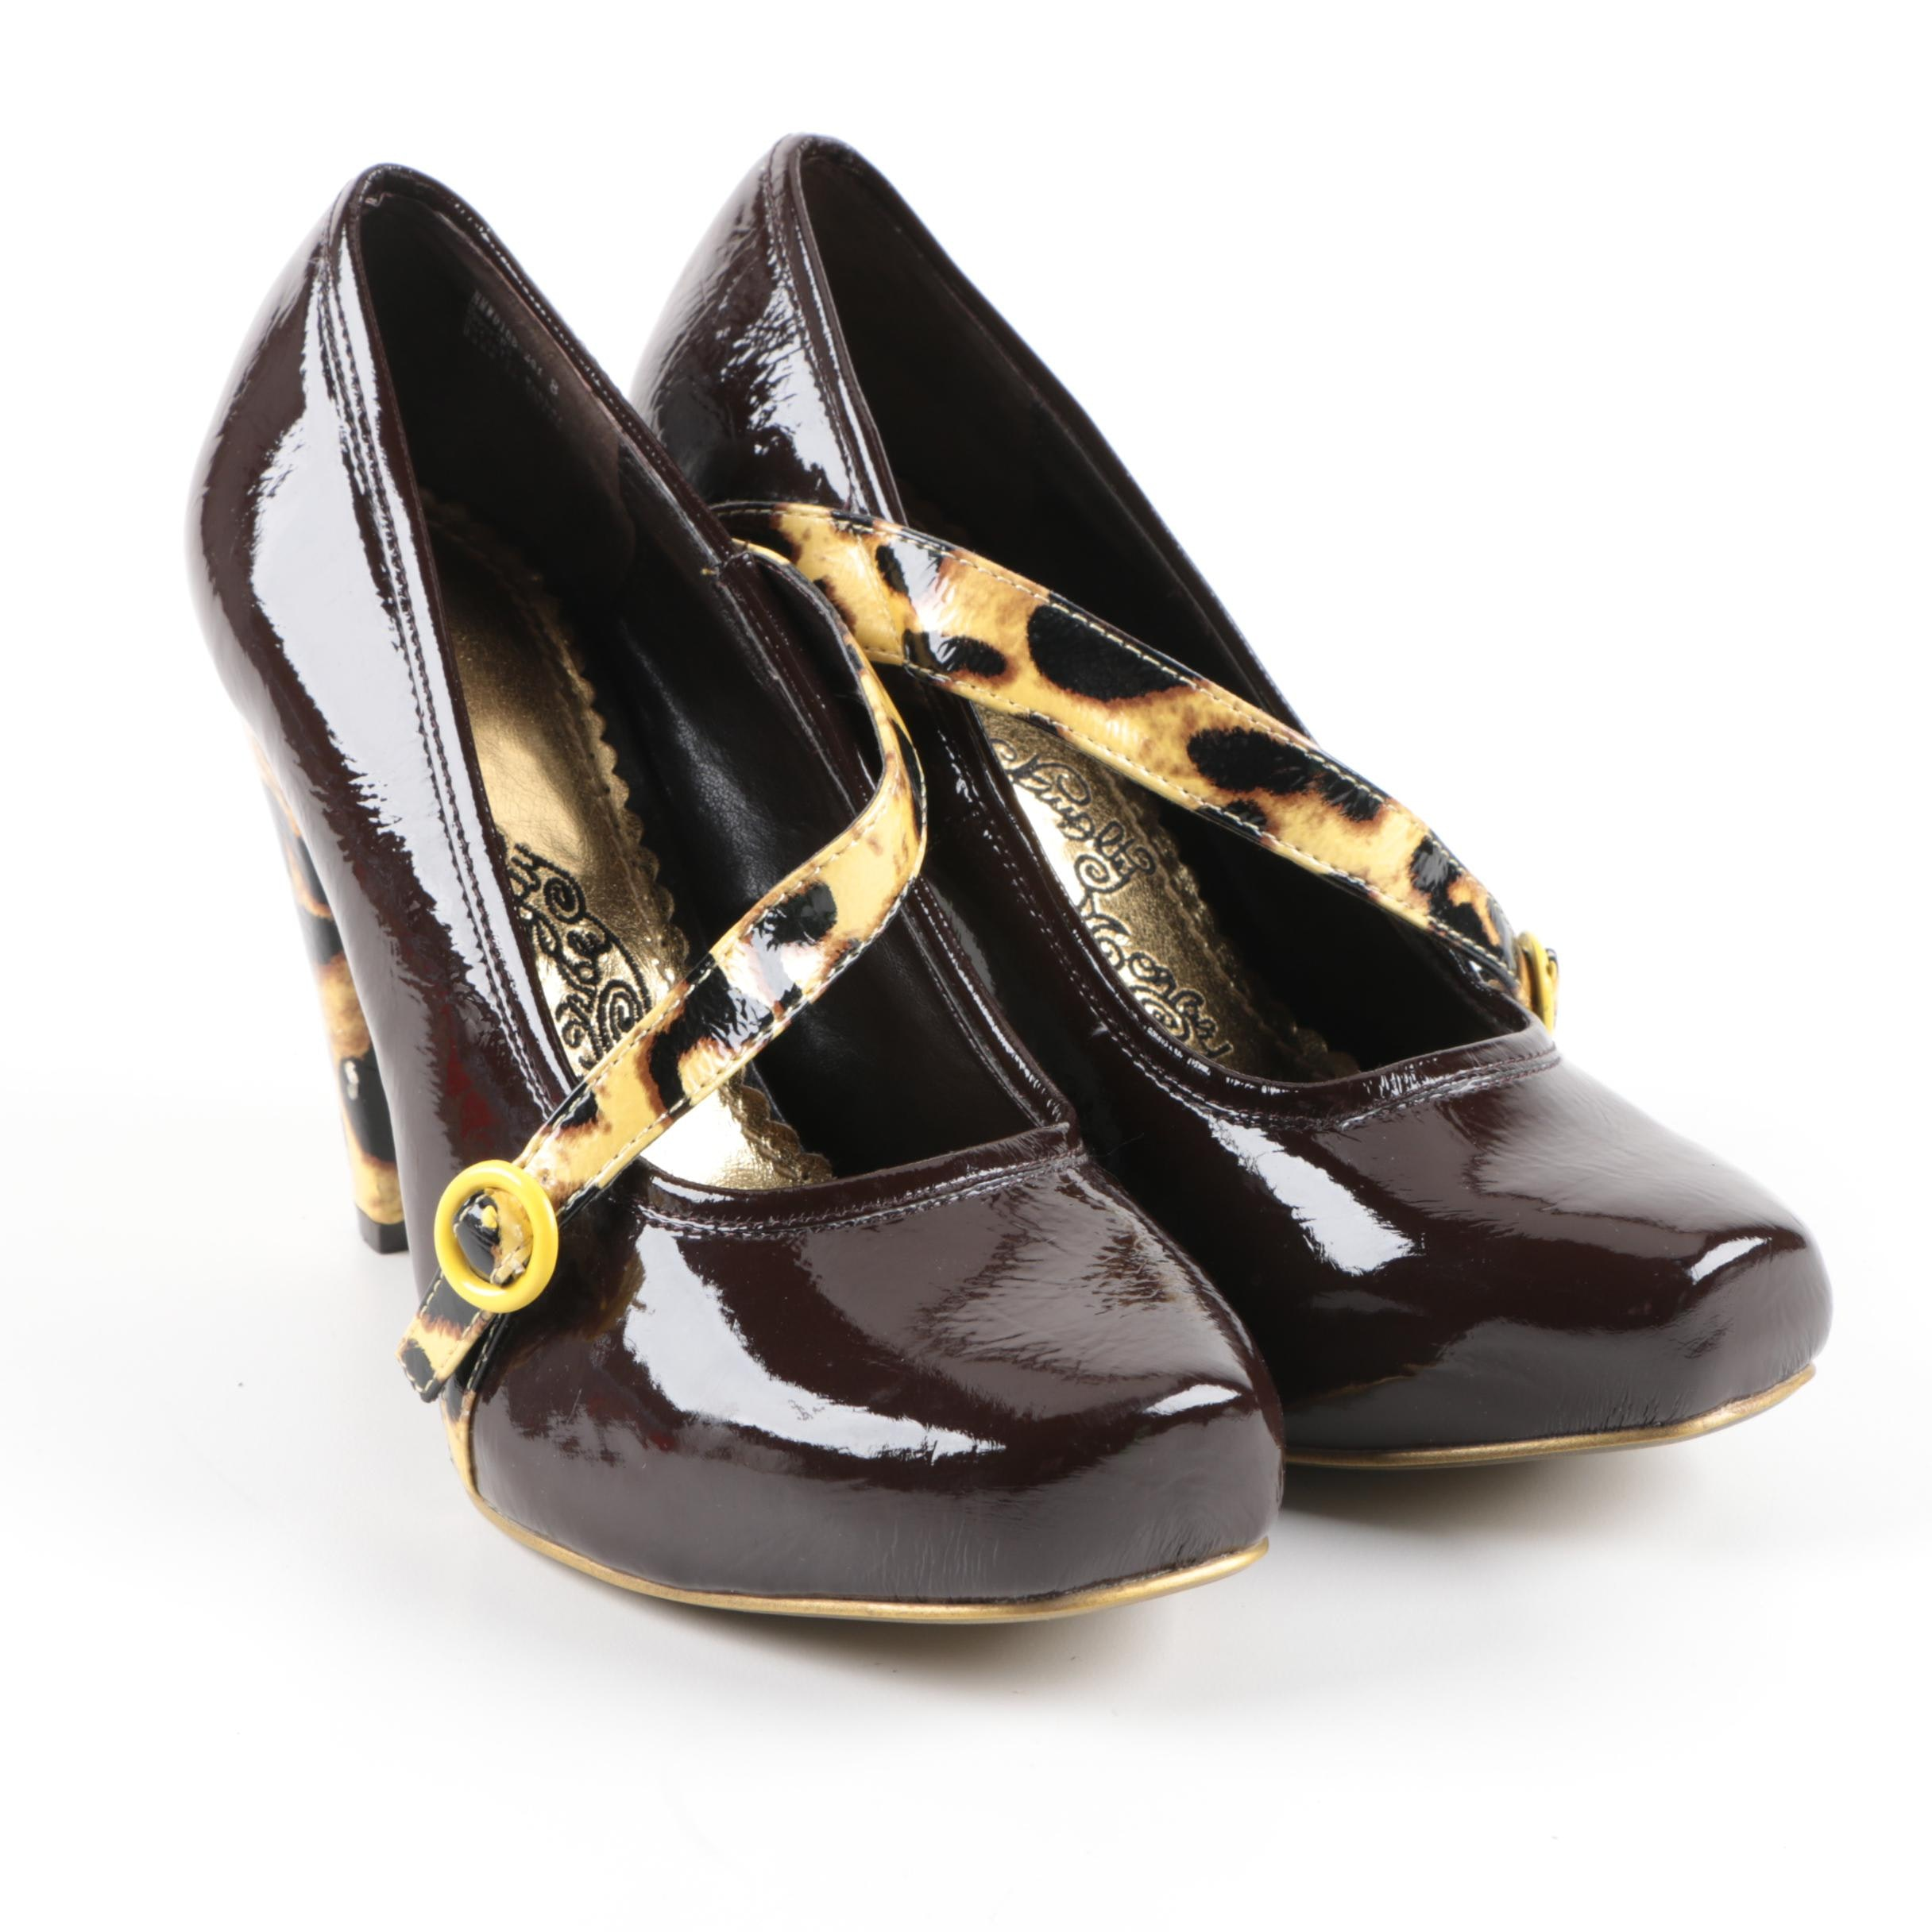 Naughty Monkey Brown Patent Leather High Heels with Leopard Print